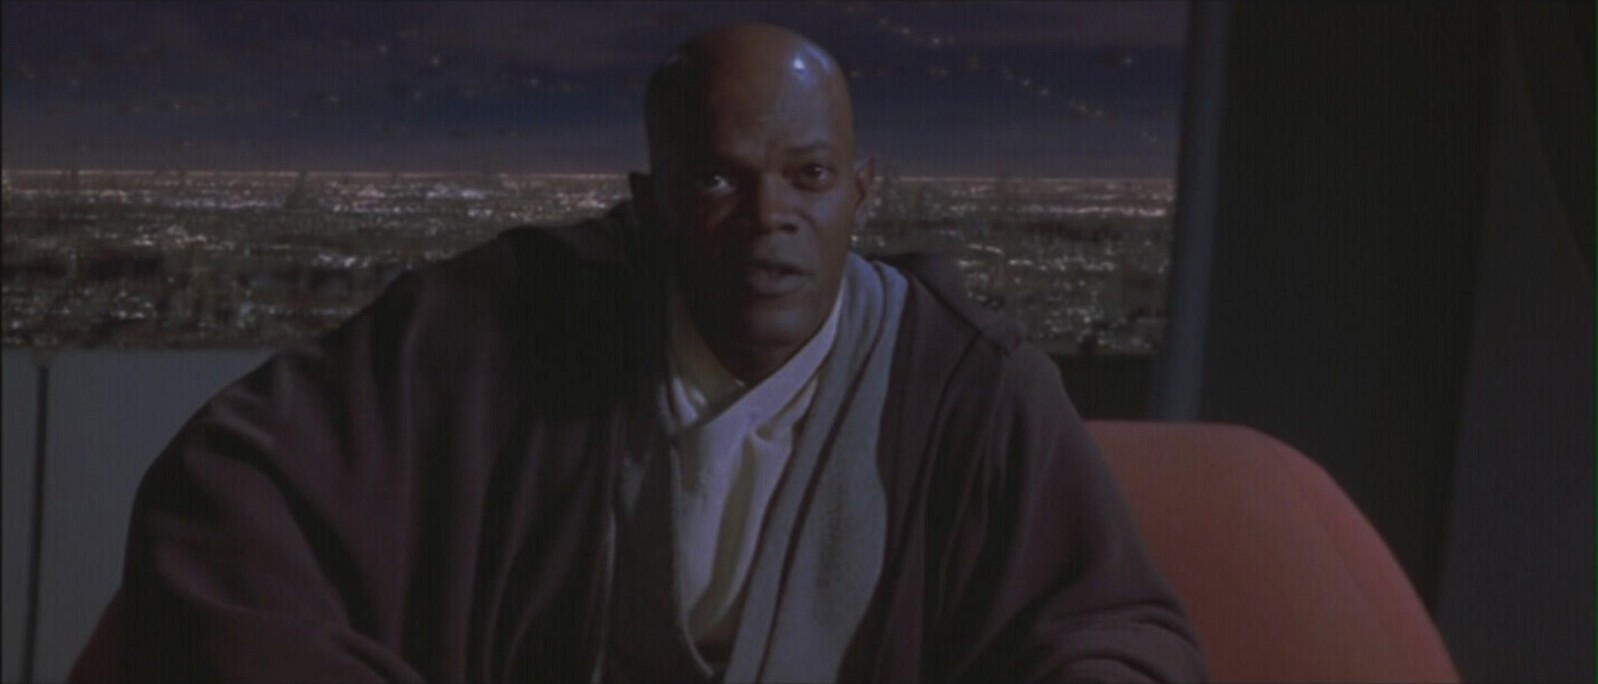 Sith Wallpaper Hd Mace Windu Images Screencap Hd Wallpaper And Background